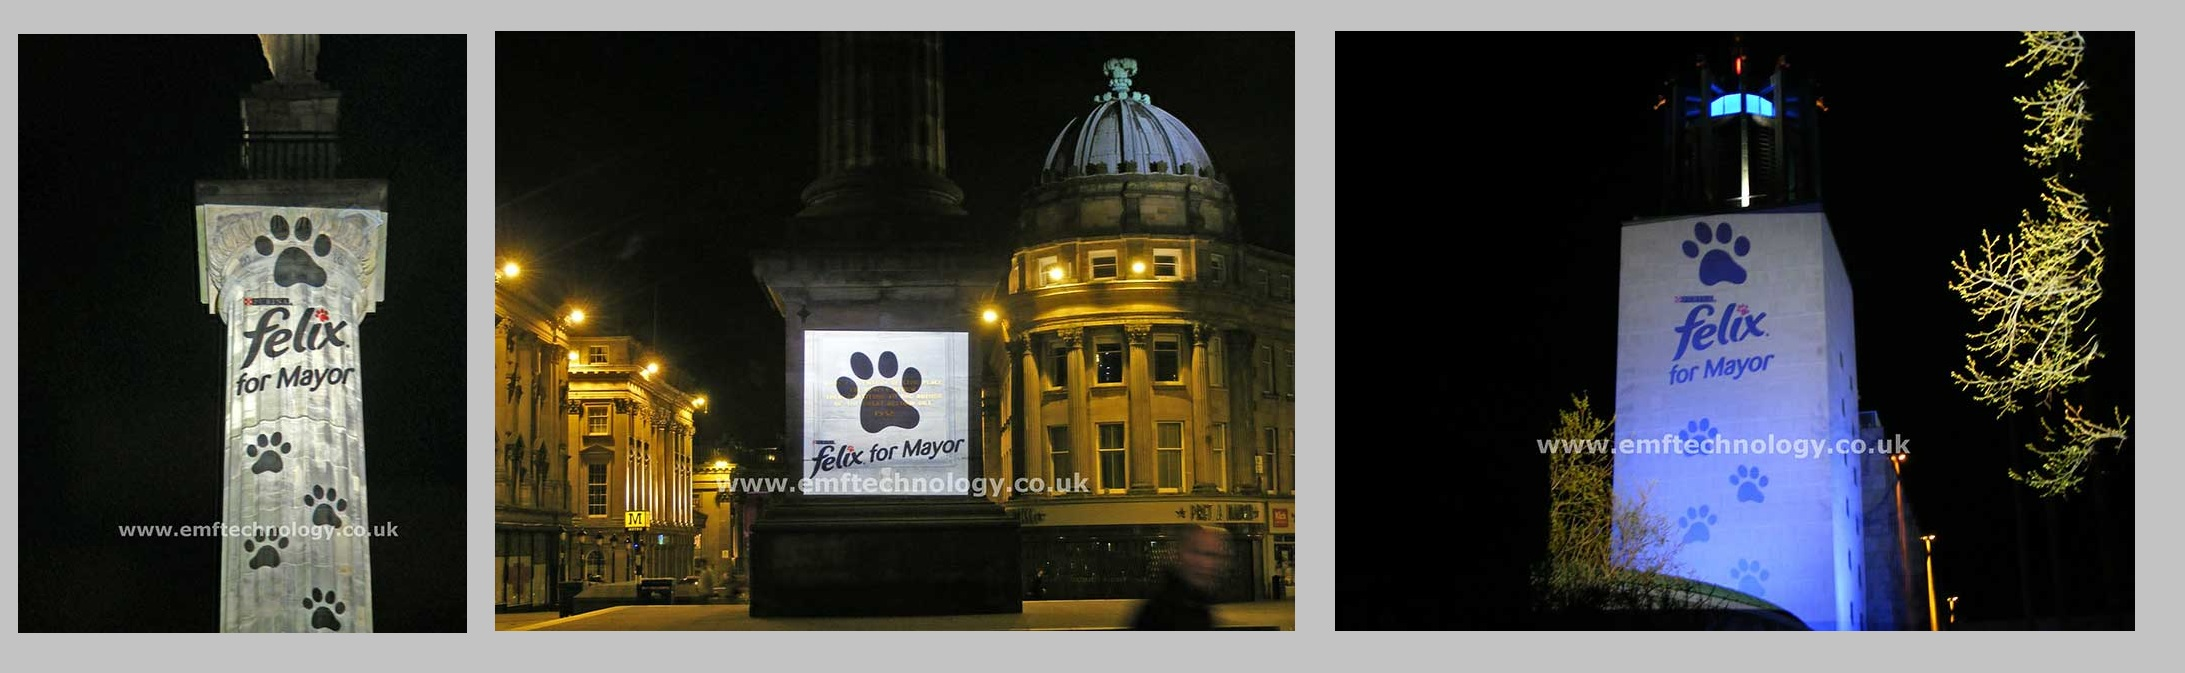 Outdoor Building Projection Advertising Campaign Newcastle